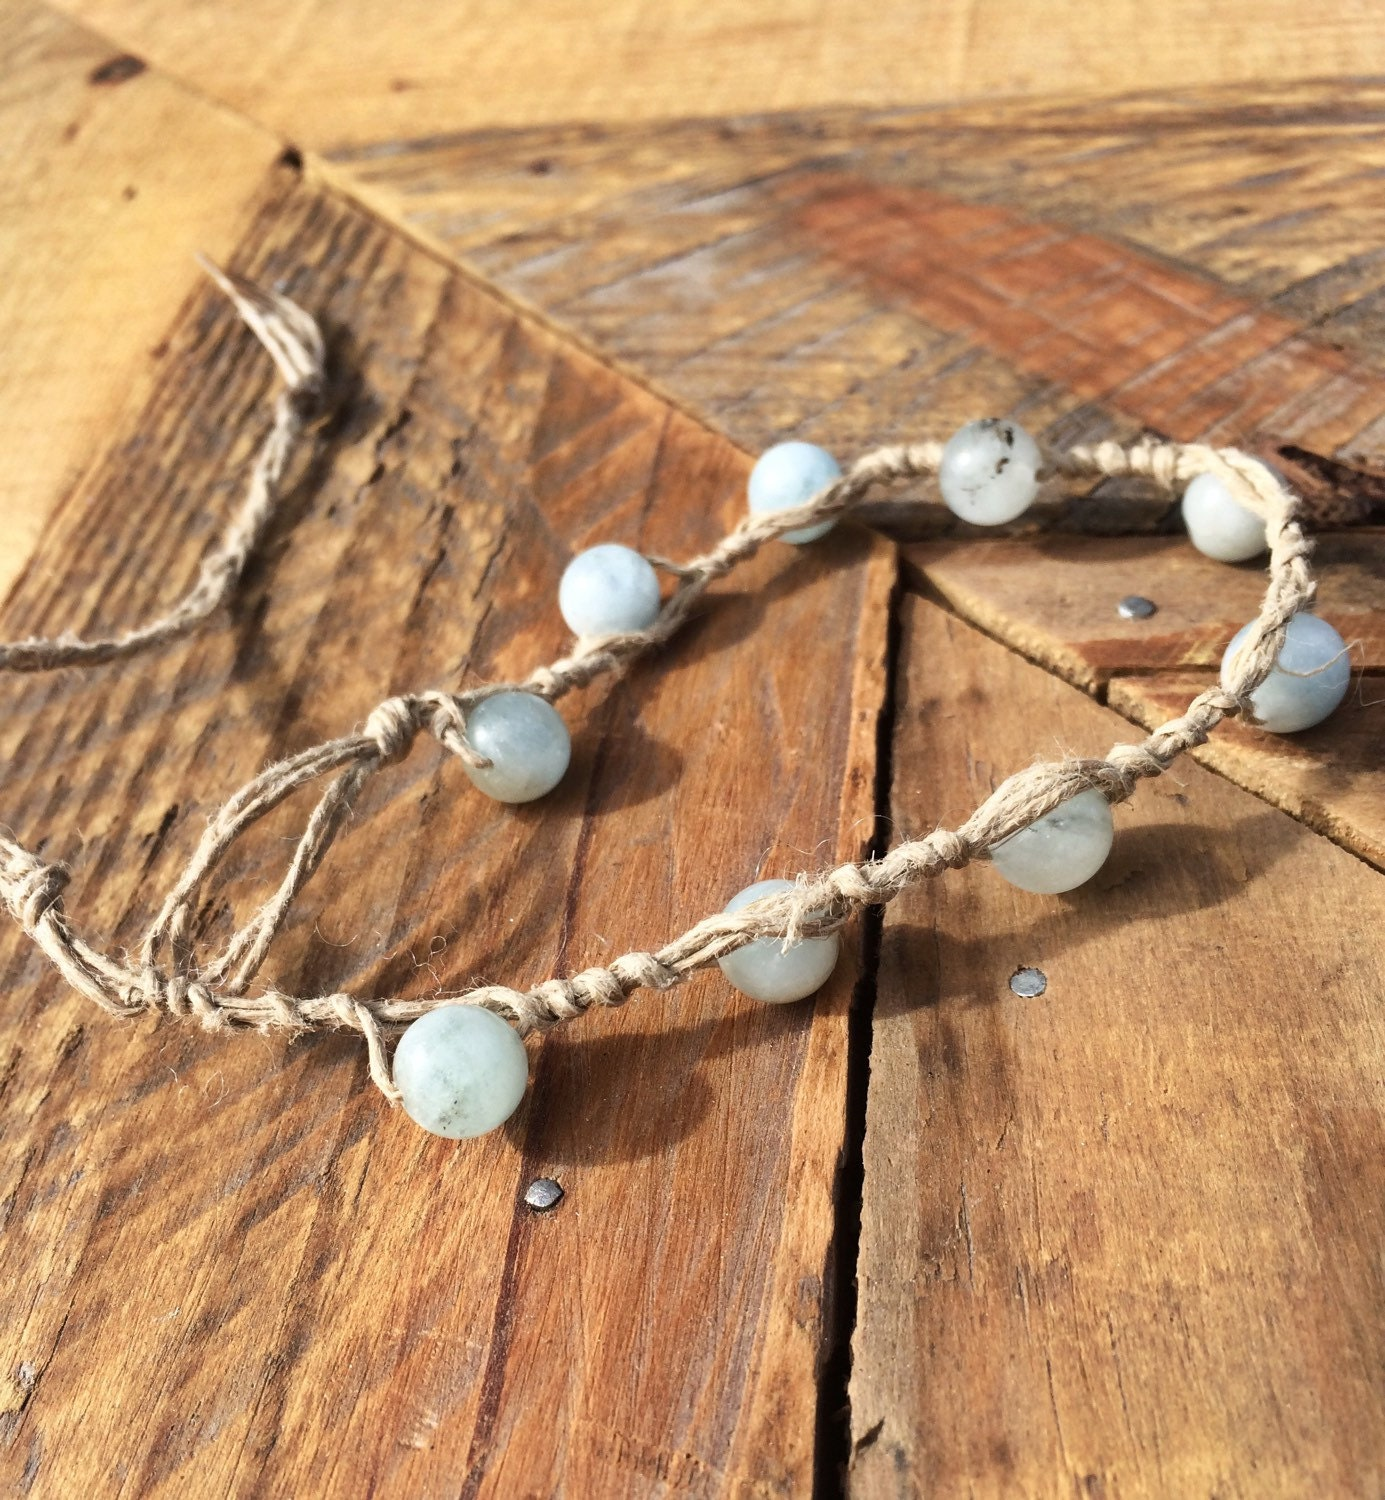 Surfer Girl Surfproof Hemp Anklet With Aquamarine Blue Beads. Baby Name Rings. Non Traditional Rings. Women's Silver Bangle Bracelets. Low Profile Watches. Gold Plain Bracelet. Bride Bracelet. Game Earrings. Jade Sapphire